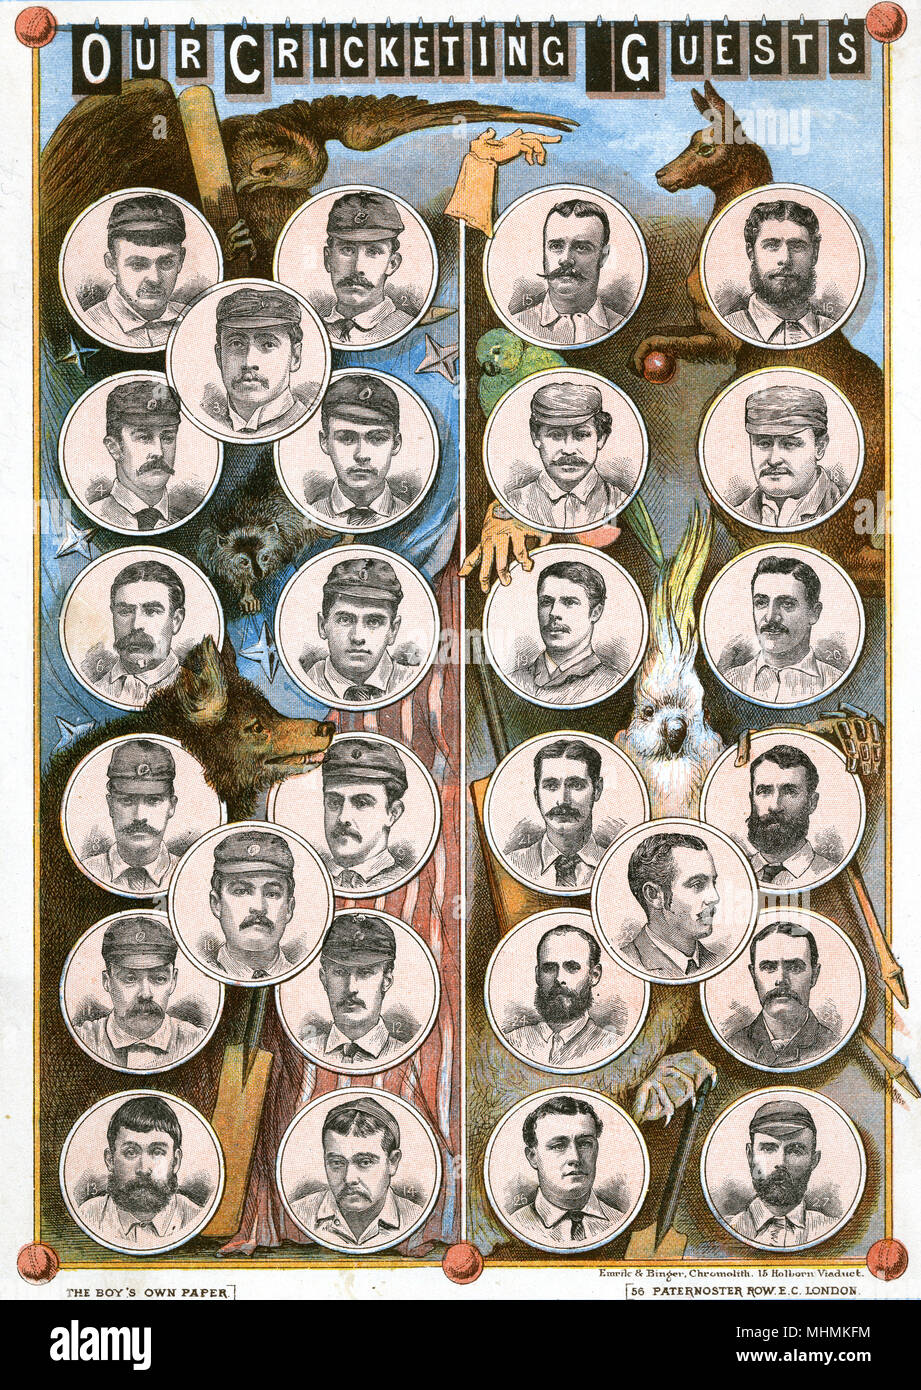 'Our Cricketing Guests' The Philadelphia and Australian touring teams.      Date: 1884 Stock Photo